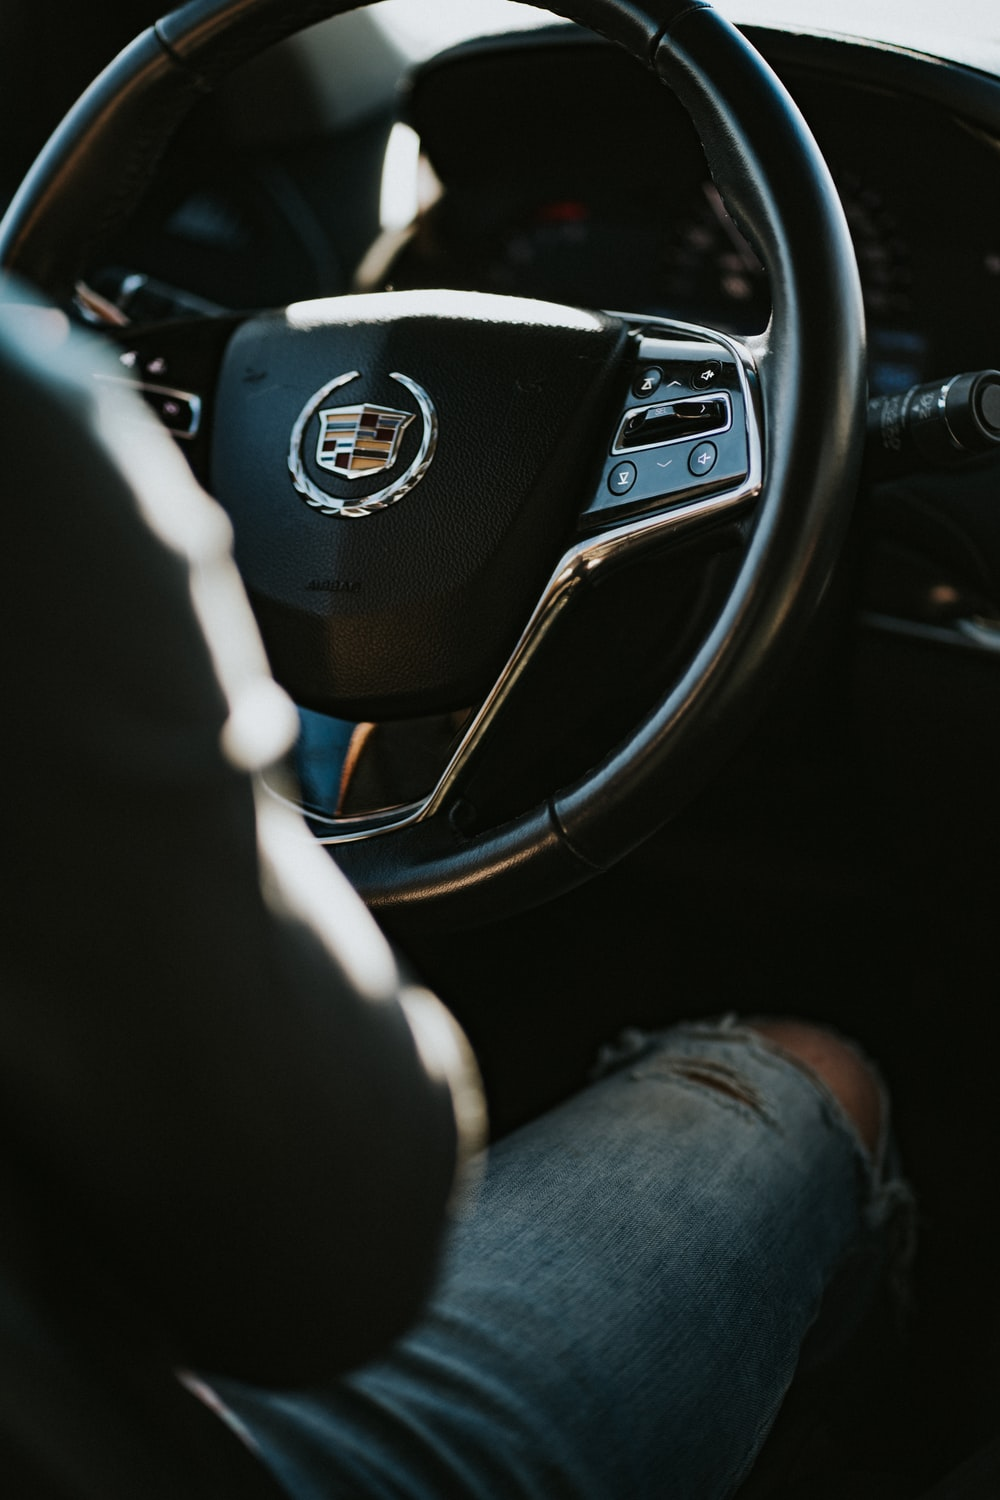 person in blue distressed denim jeans sitting on driver seat inside Cadillac car during daytime